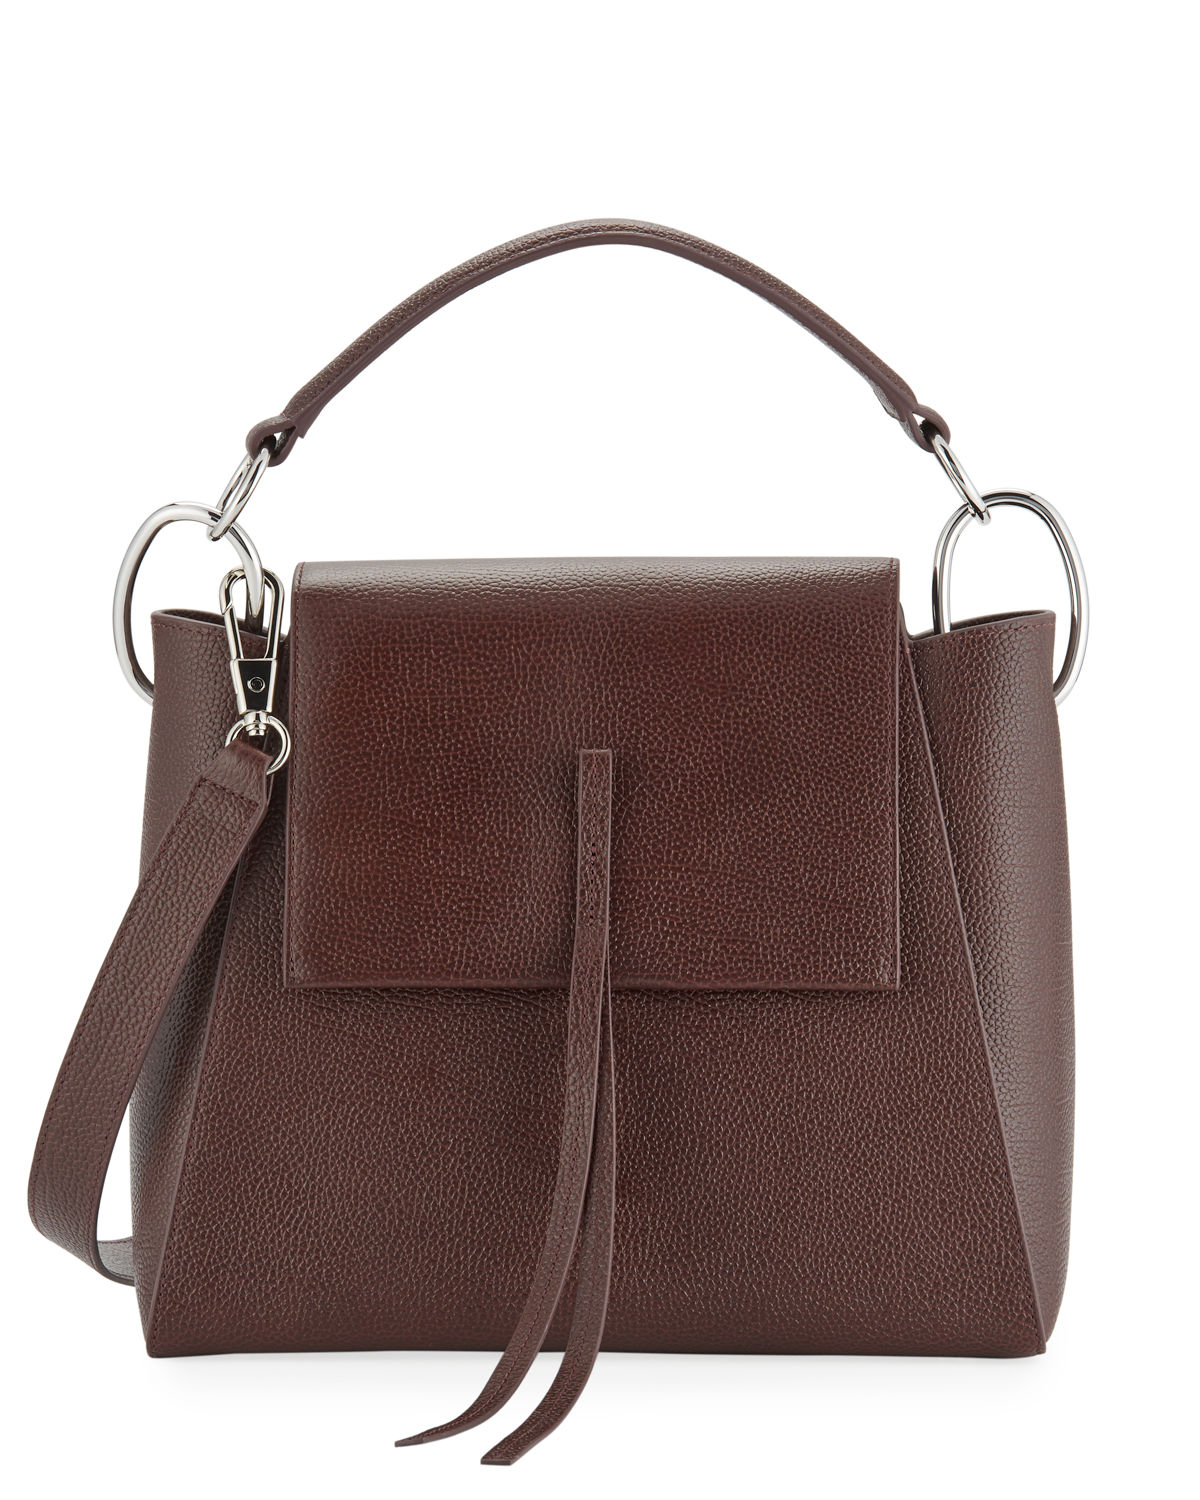 Leigh Leather Top-Handle Satchel Bag